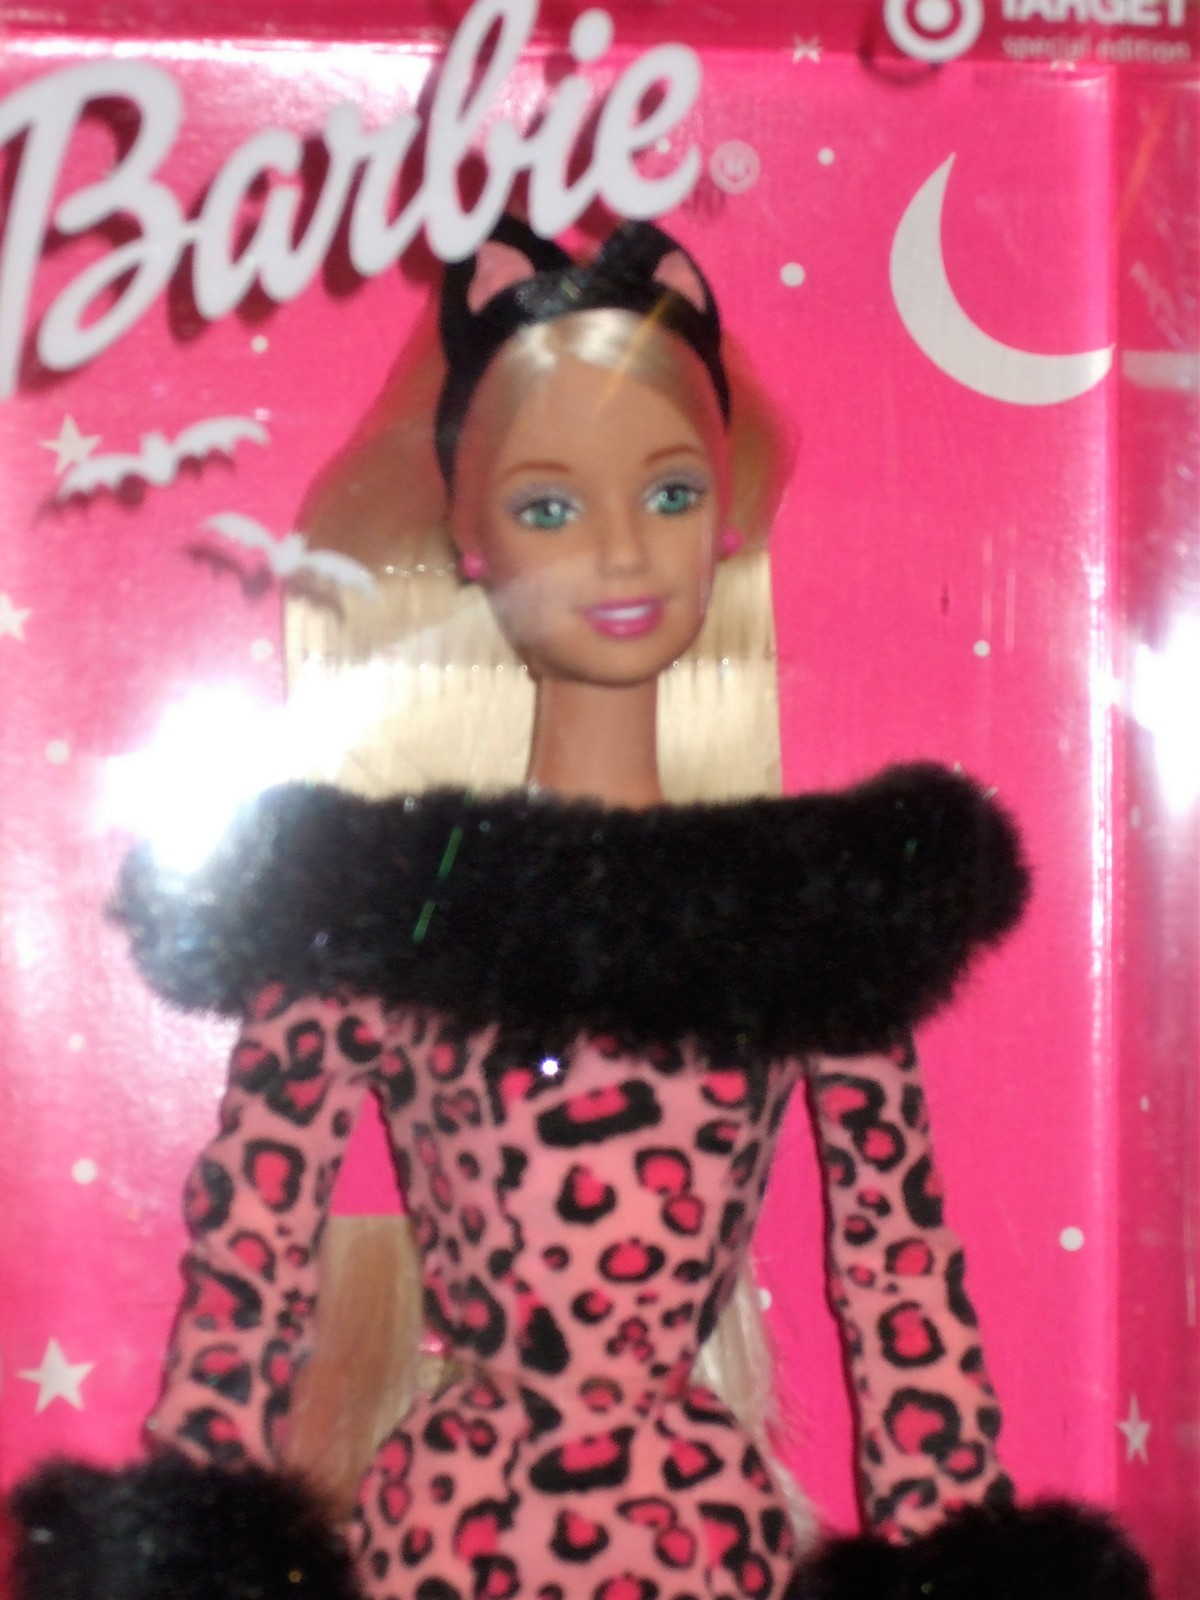 Barbie Doll - Perr-fectly Halloween (Target Special Edition) image 3